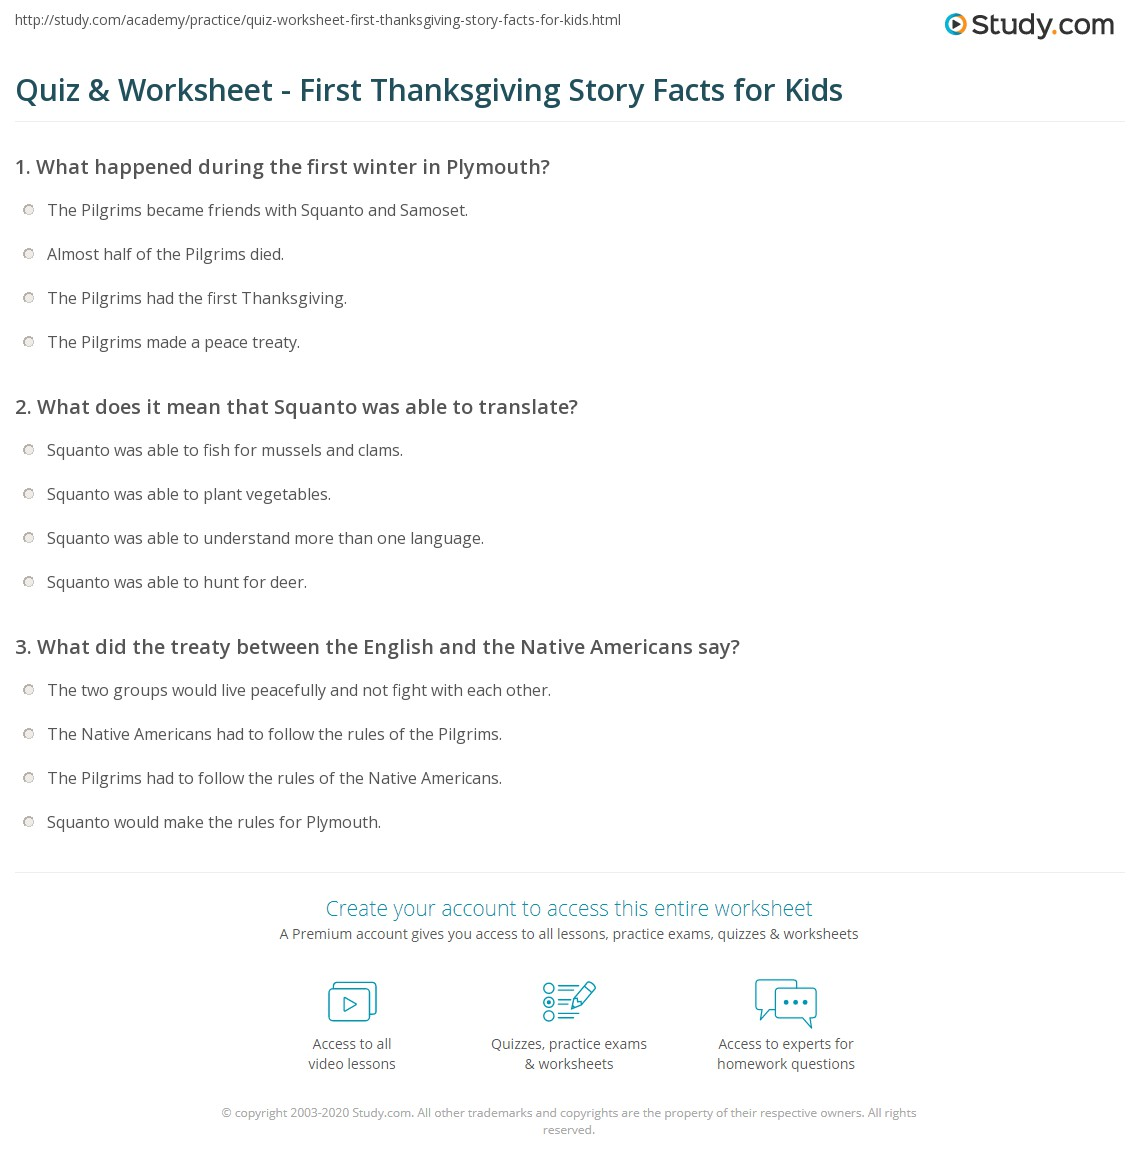 Quiz Worksheet First Thanksgiving Story Facts for Kids Studycom